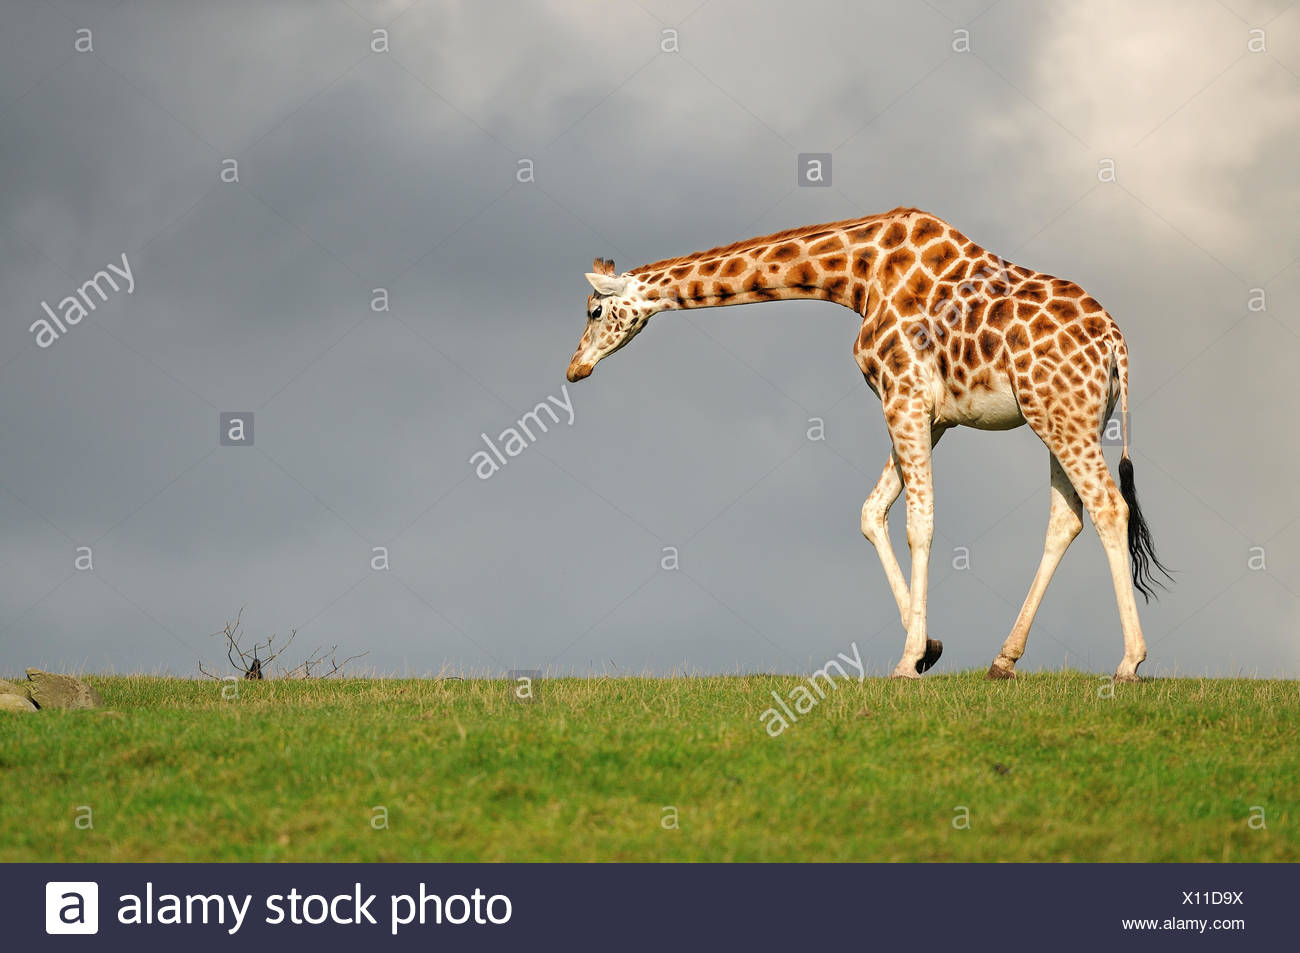 Giraffe walking against dark sky - Stock Image